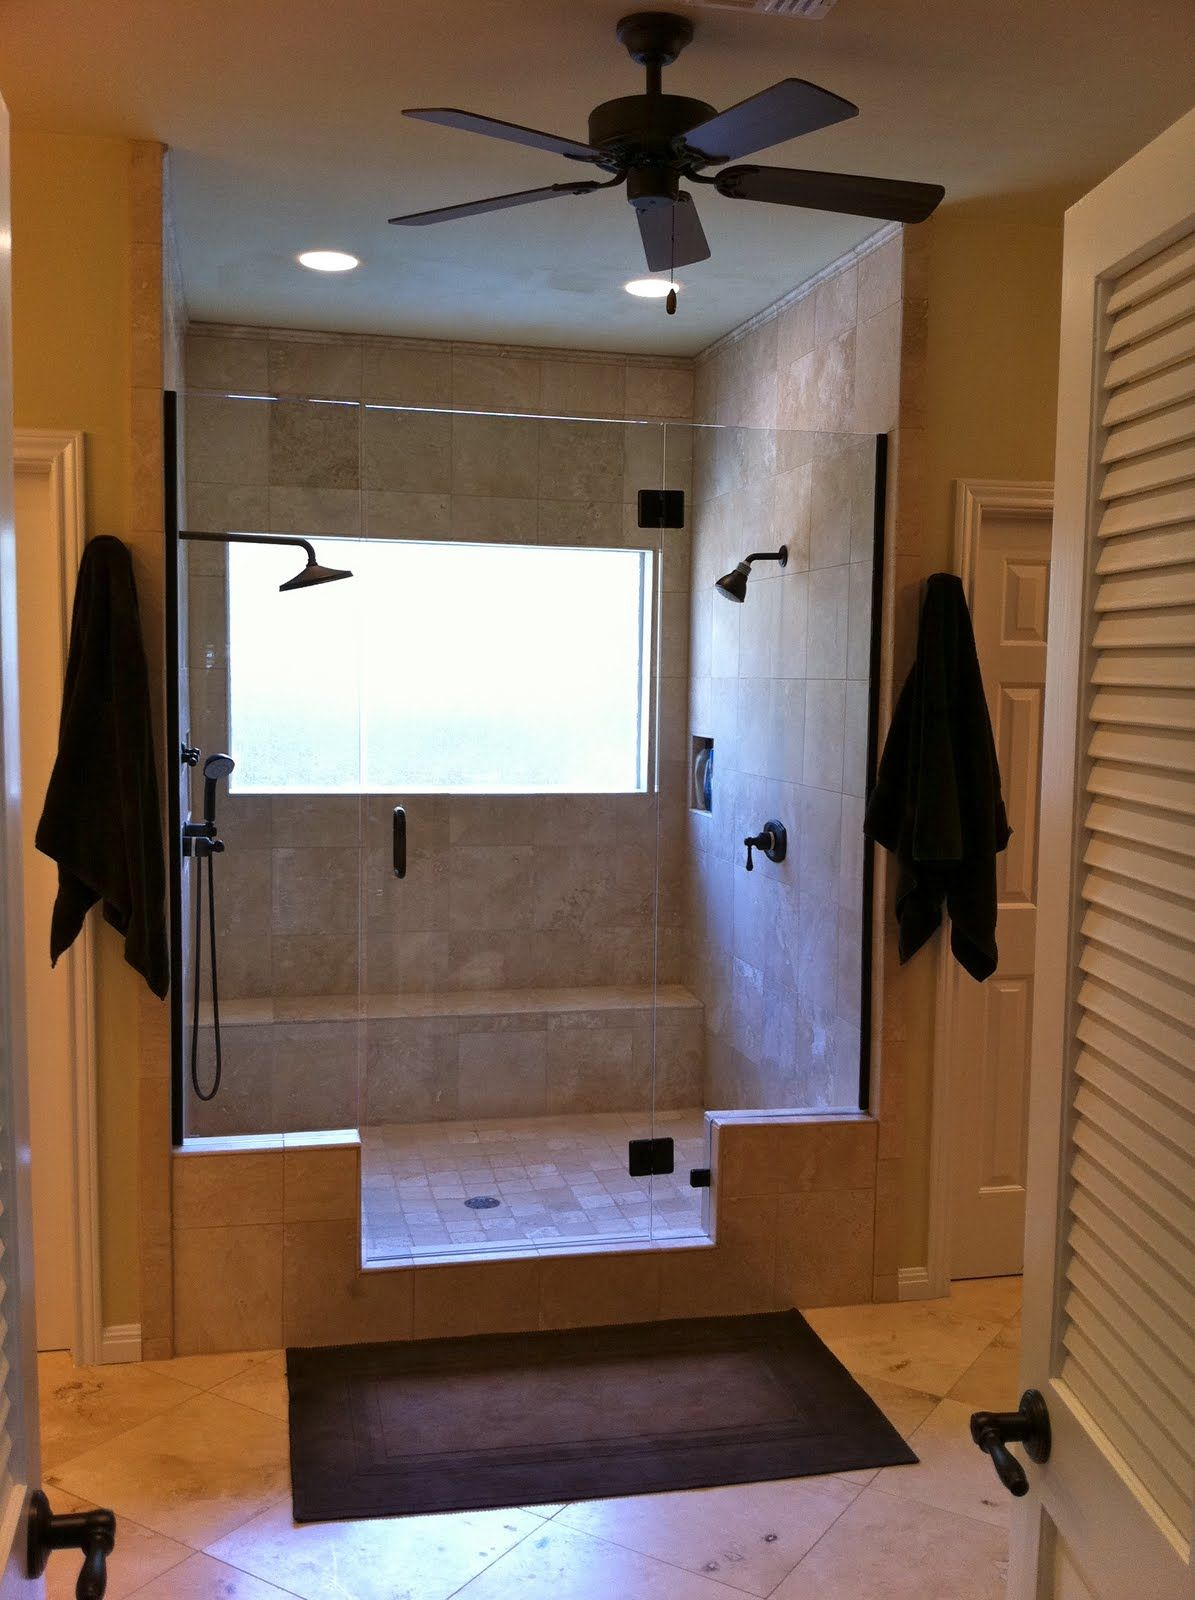 Big master bathroom ideas - Master Bathroom Redo Small Master Bathroom Remodeling Ideas Cool Master Bathroom Remodel